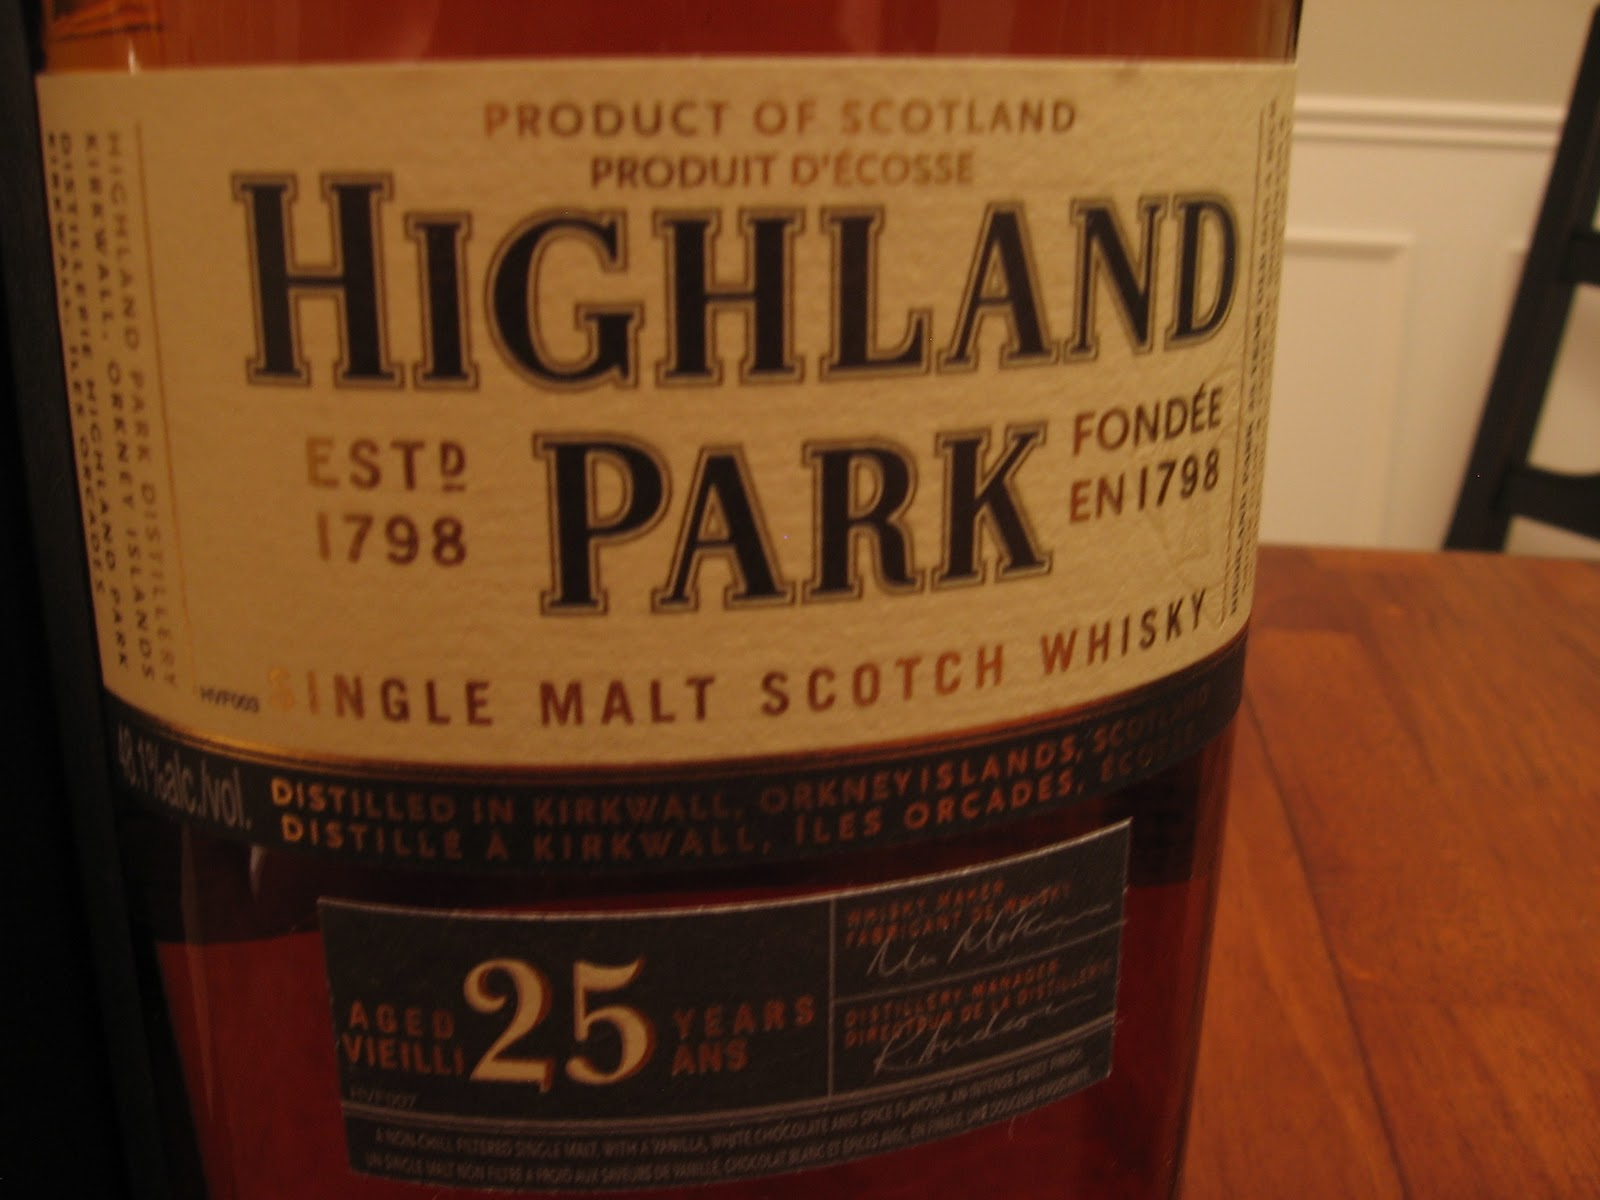 highland singles Highland single malt scotch whisky to call highland single malts diverse is an understatement: stretching from the glasgow commuter belt to the pentland firth and from the fertile east.